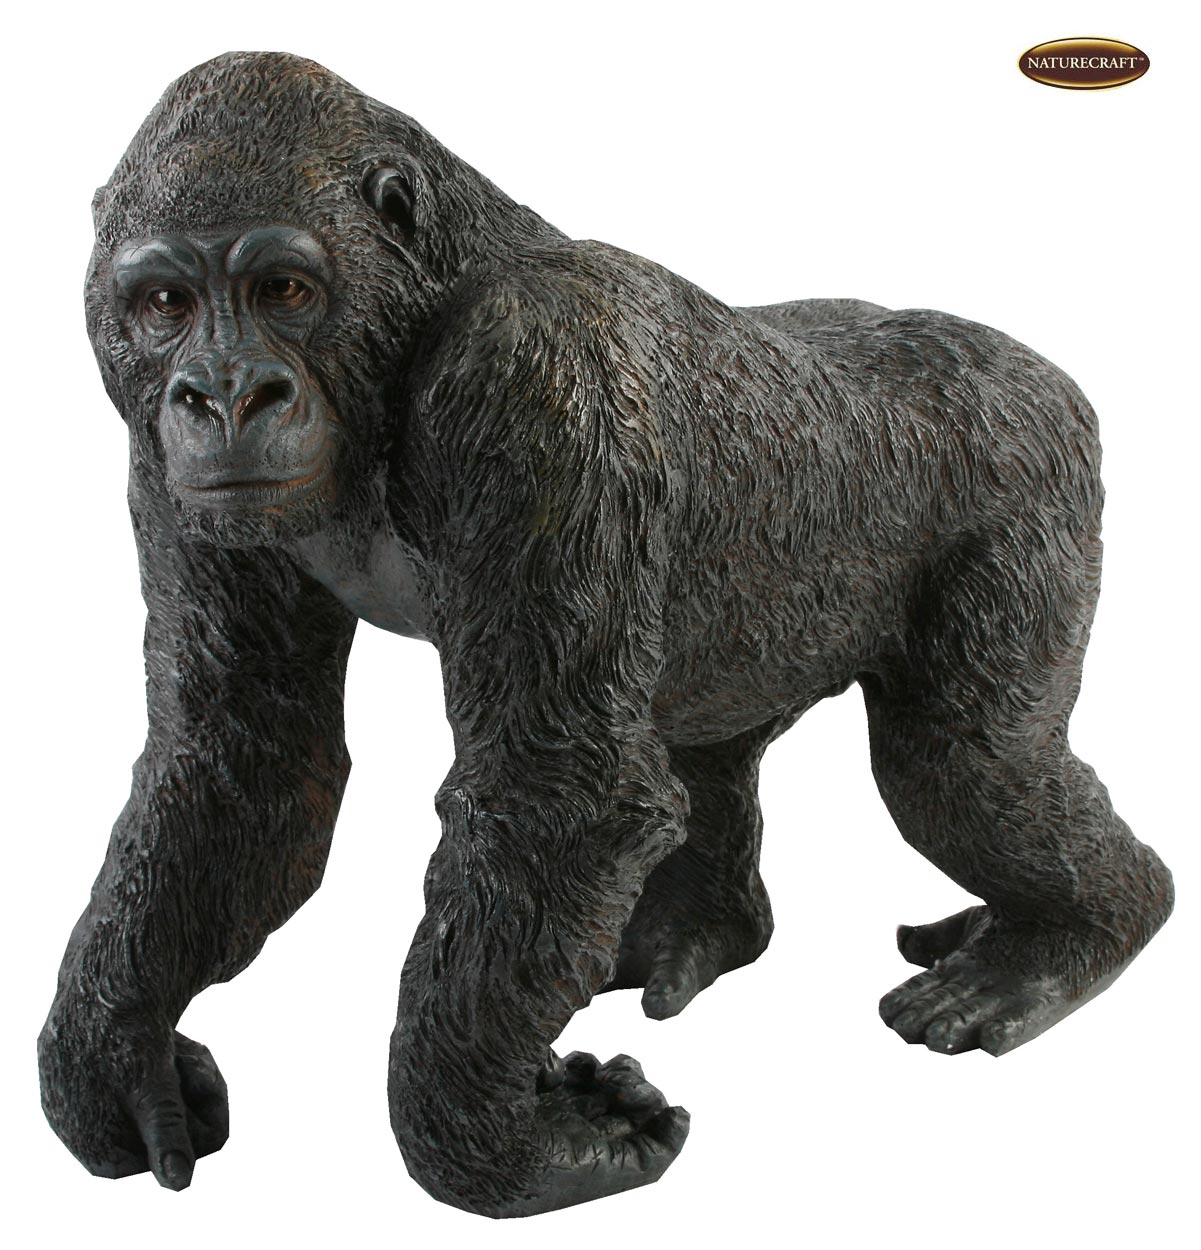 Large 14 realistic lifelike adult gorilla ornament figurine gift display statue ebay - Gorilla figurines ...